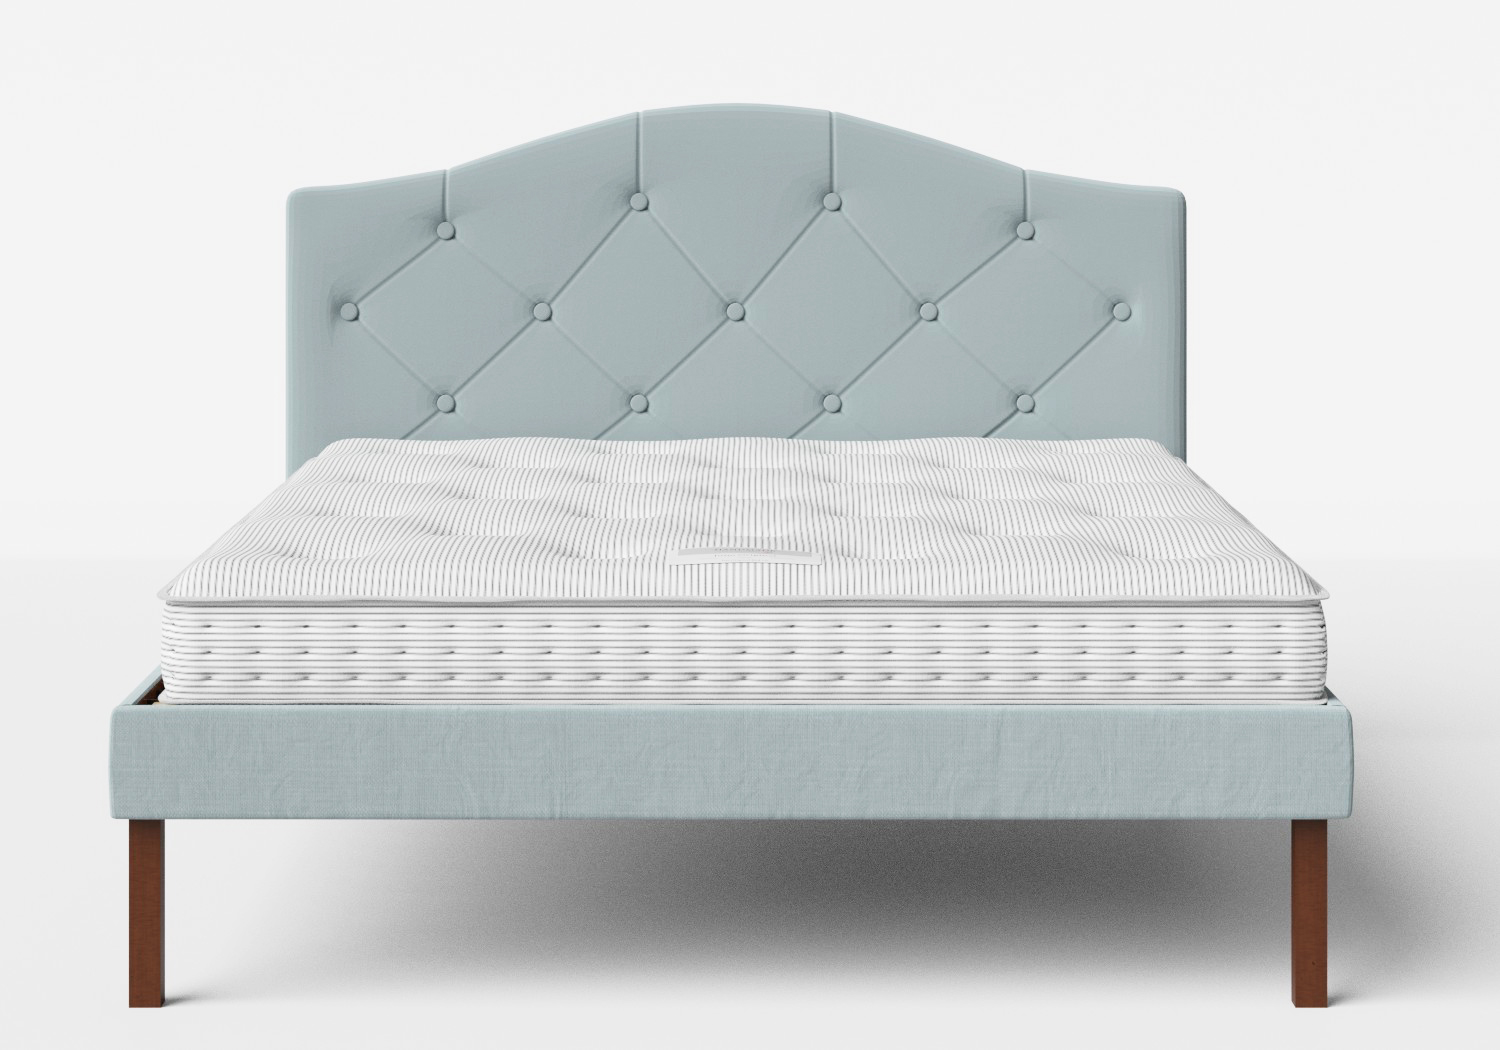 Yoshida Upholstered Bed with Wedgewood fabric with buttoning shown with Juno 1 mattress